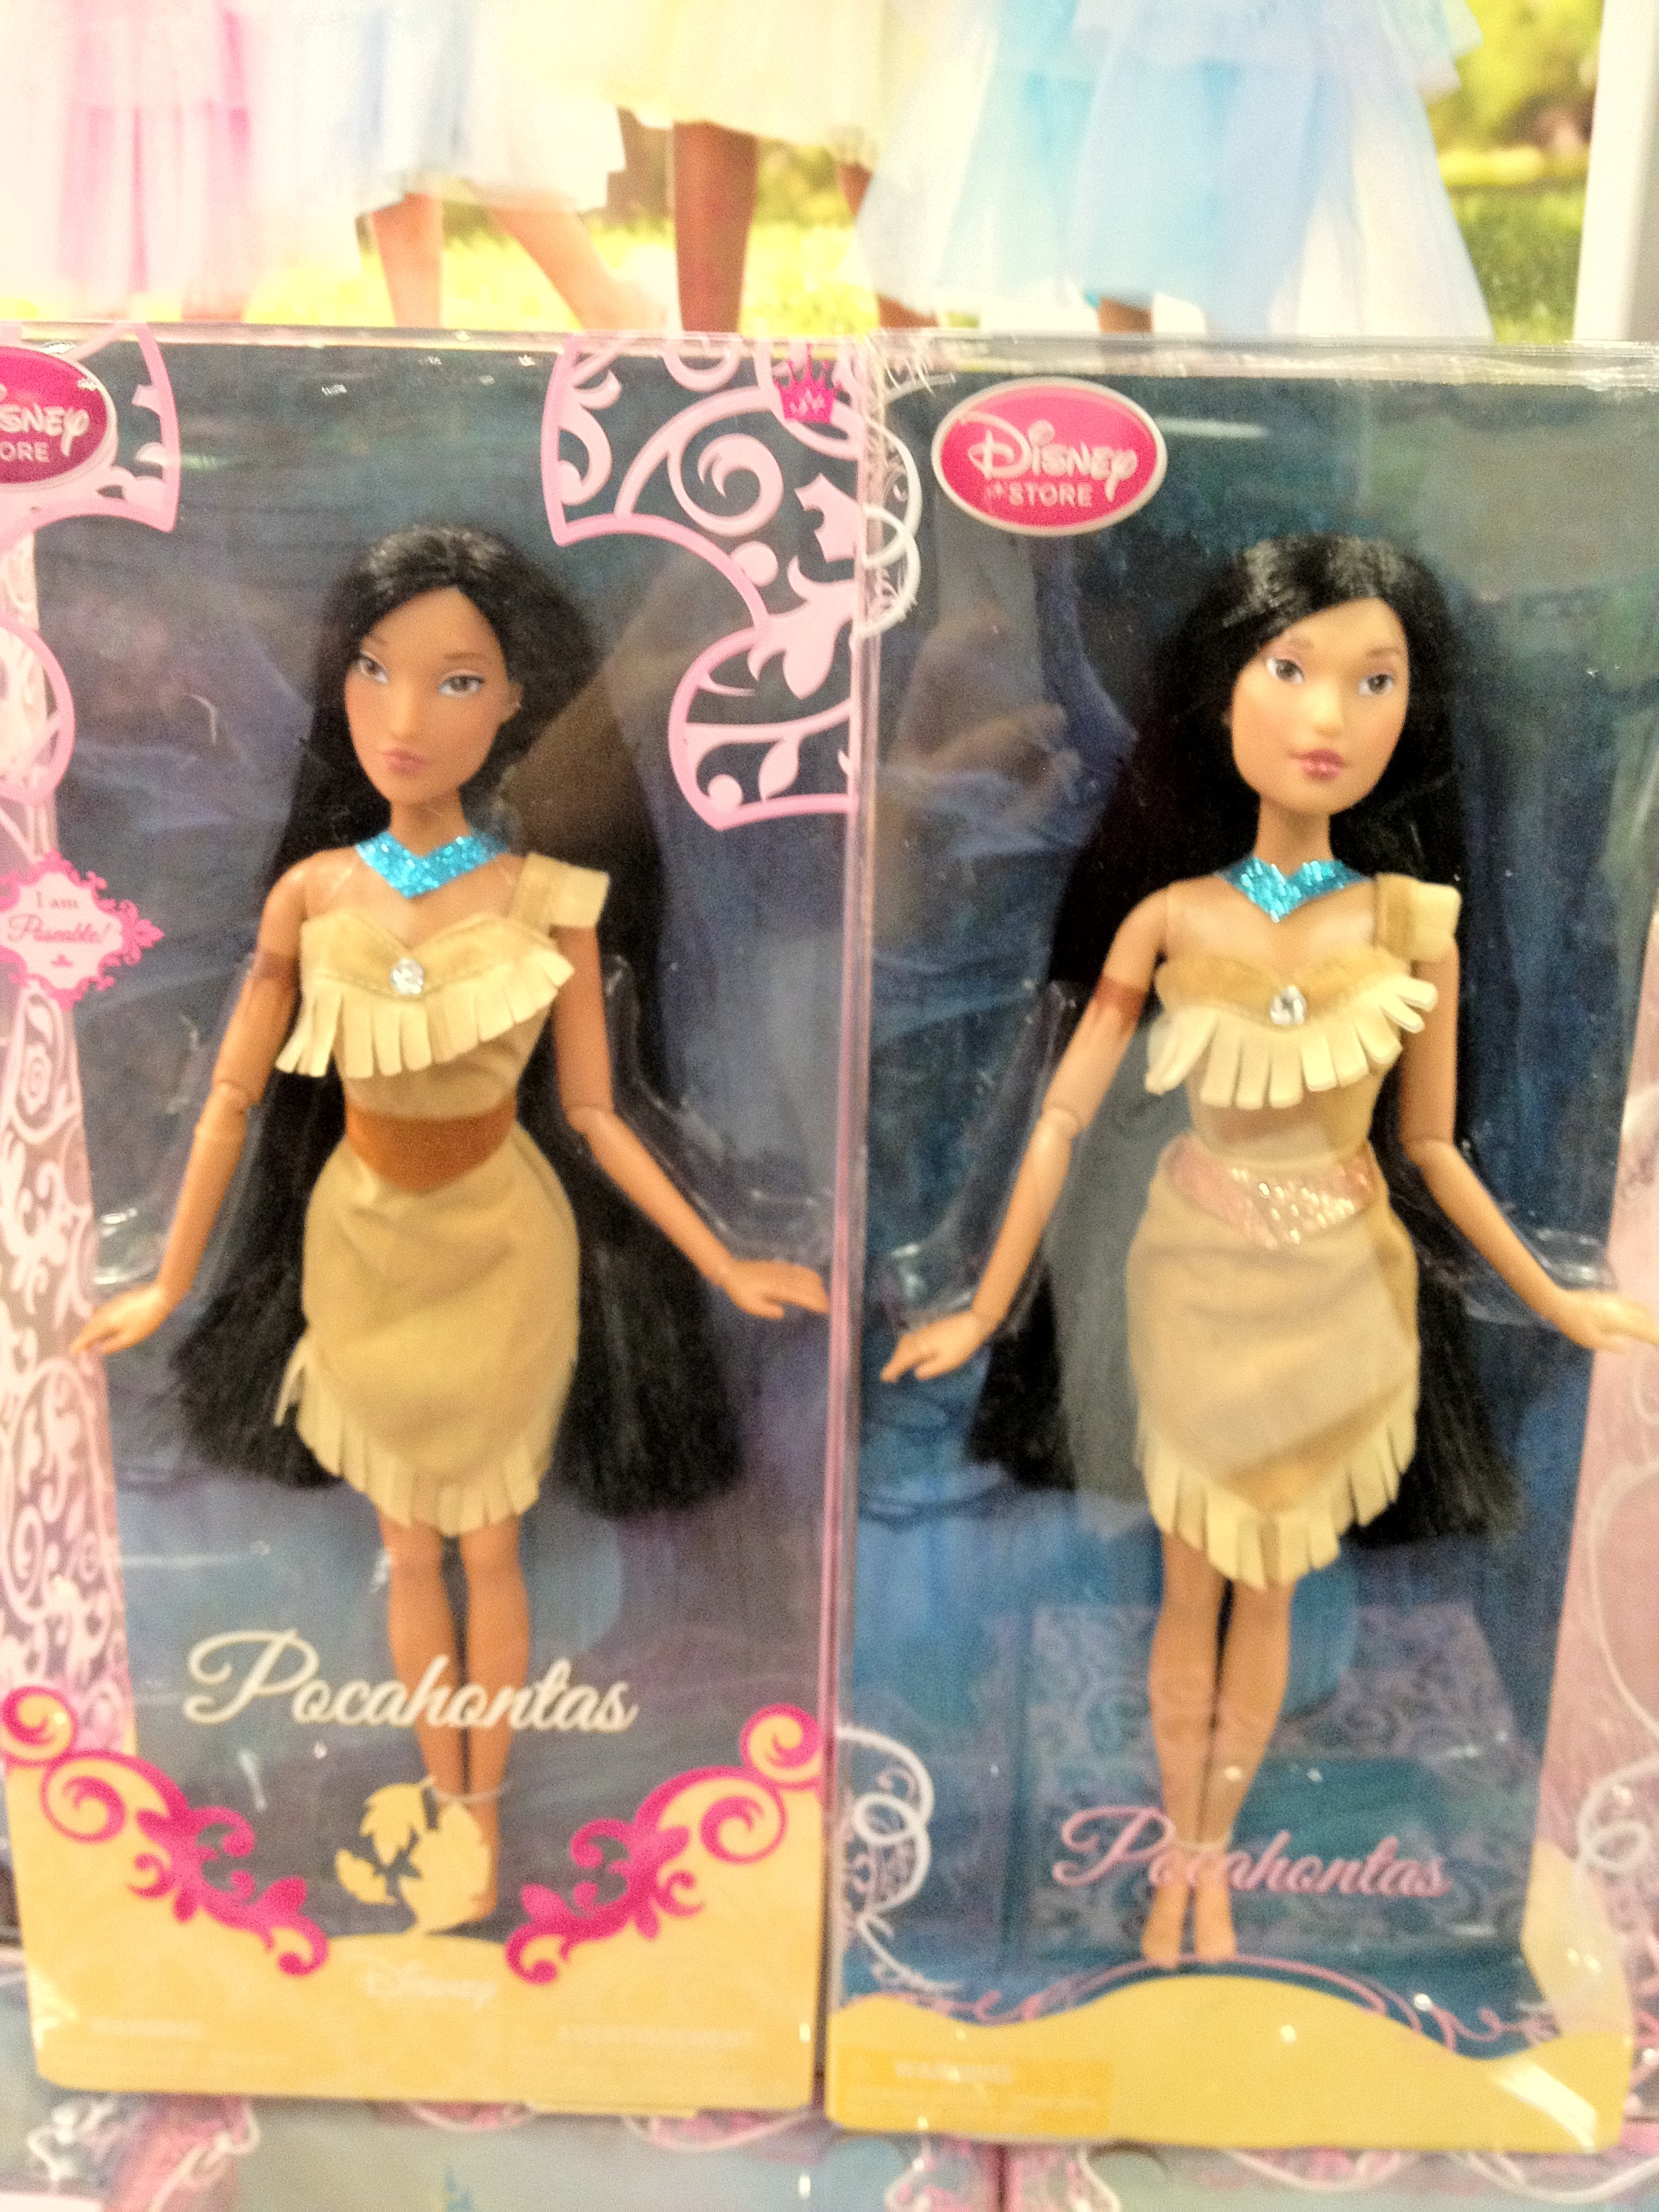 d20fe6b2c22 New at the Disney Store: Princess Dolls with Extra Sparkles! (and ...